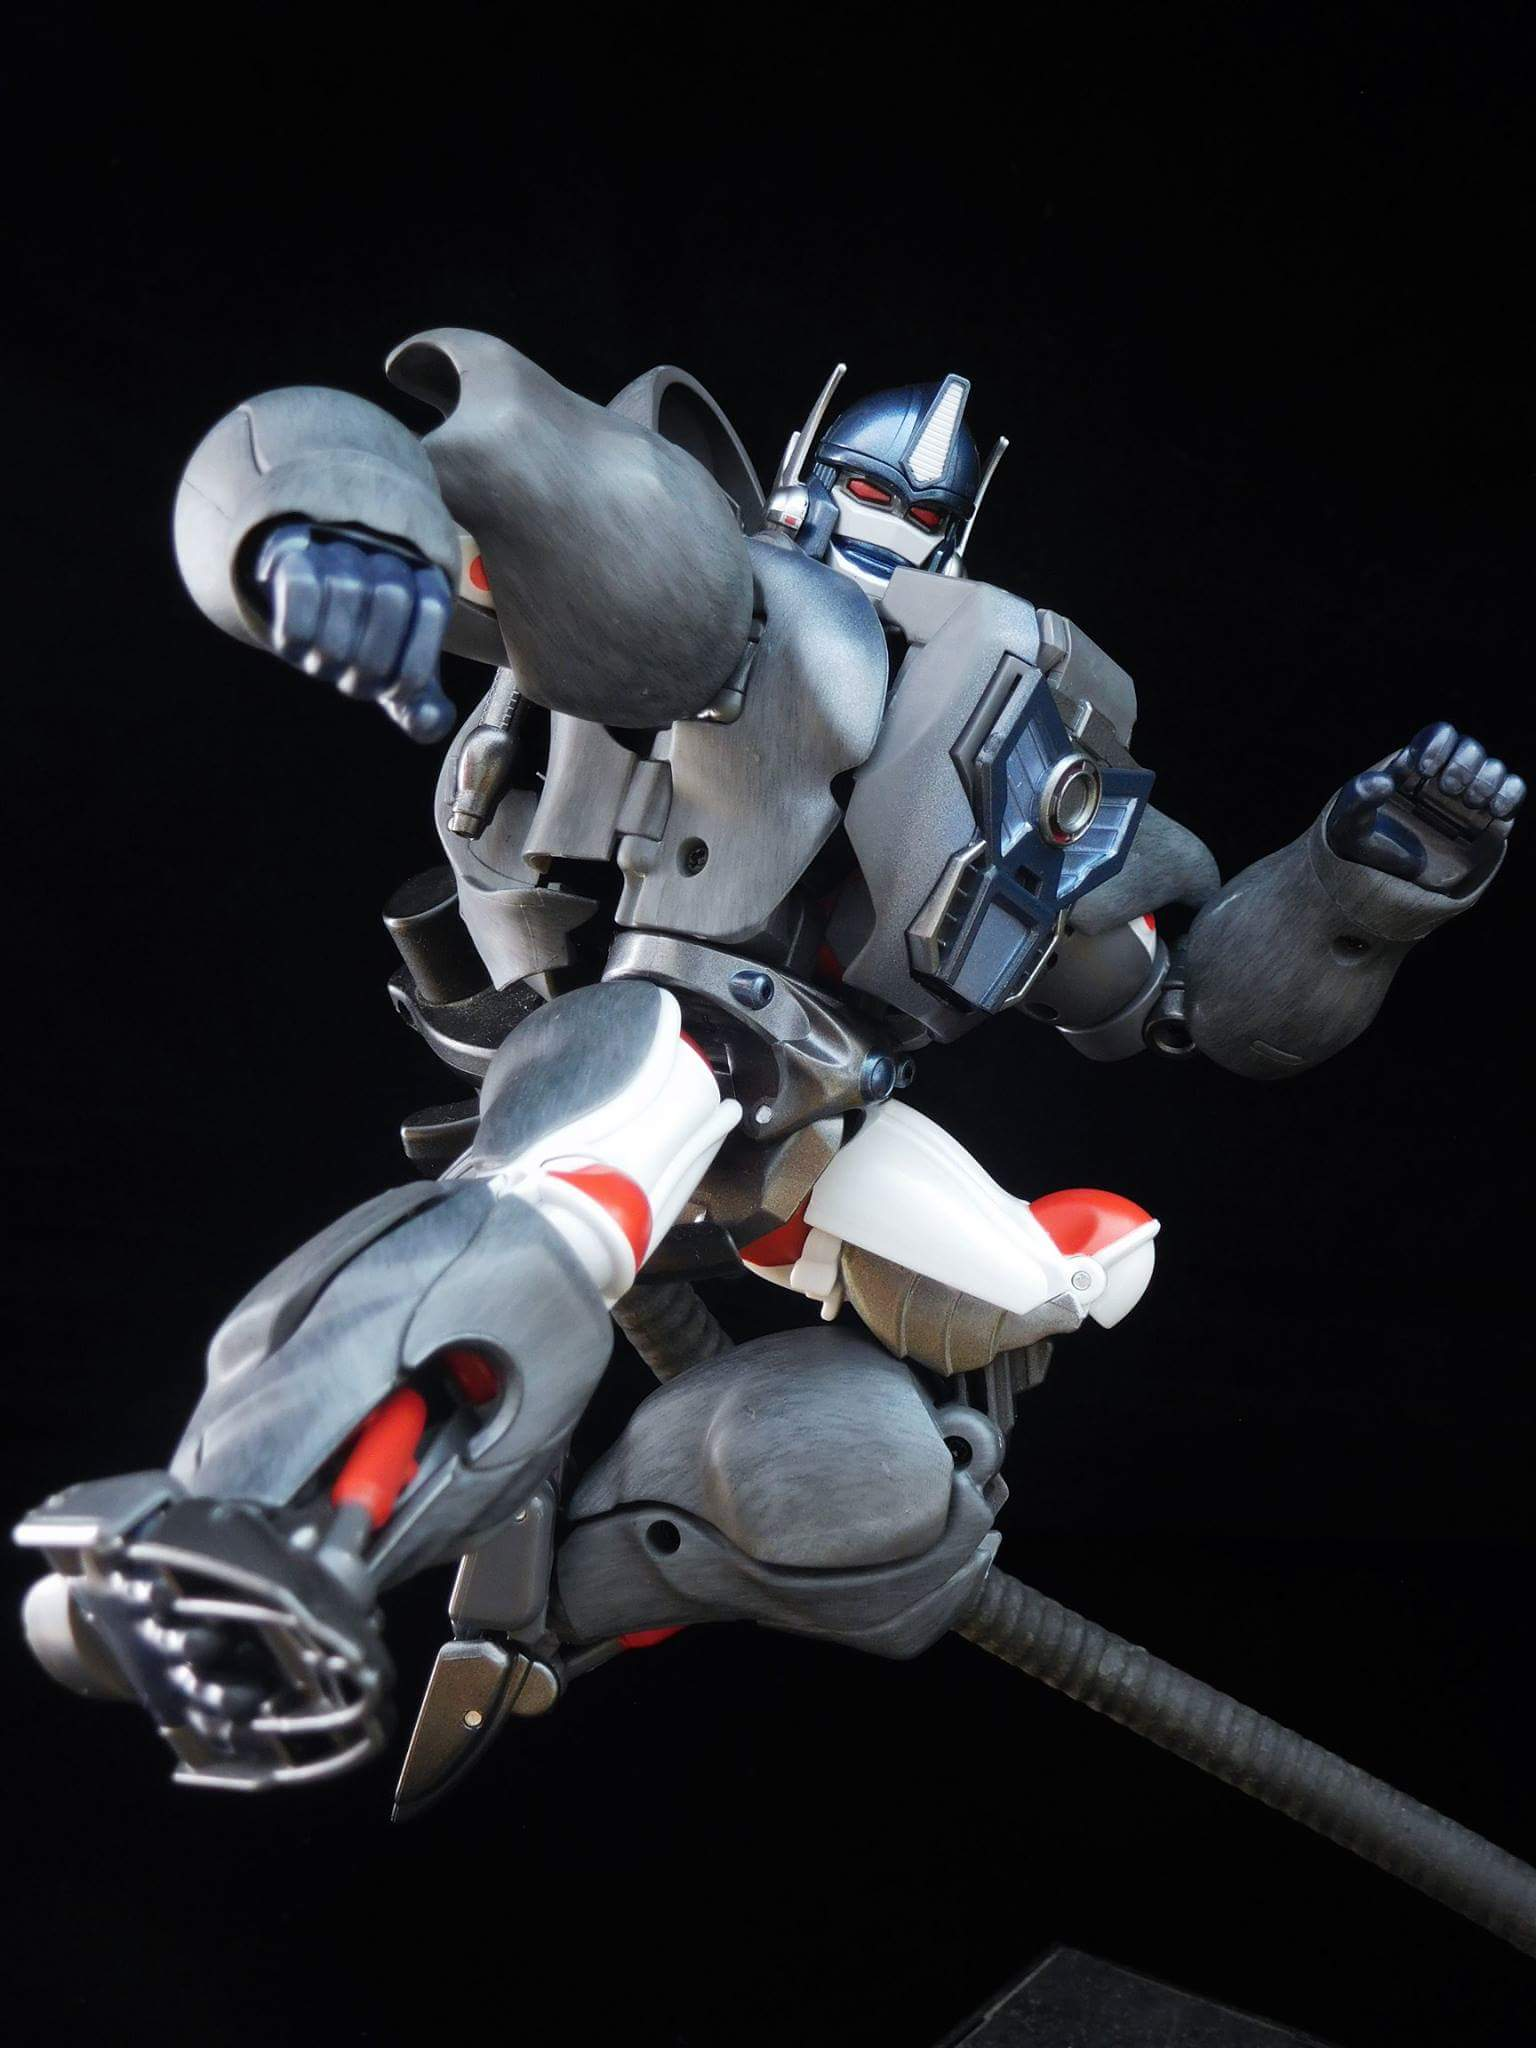 [Masterpiece] MP-32, MP-38 Optimus Primal et MP-38+ Burning Convoy (Beast Wars) - Page 3 6KLZ0fq4